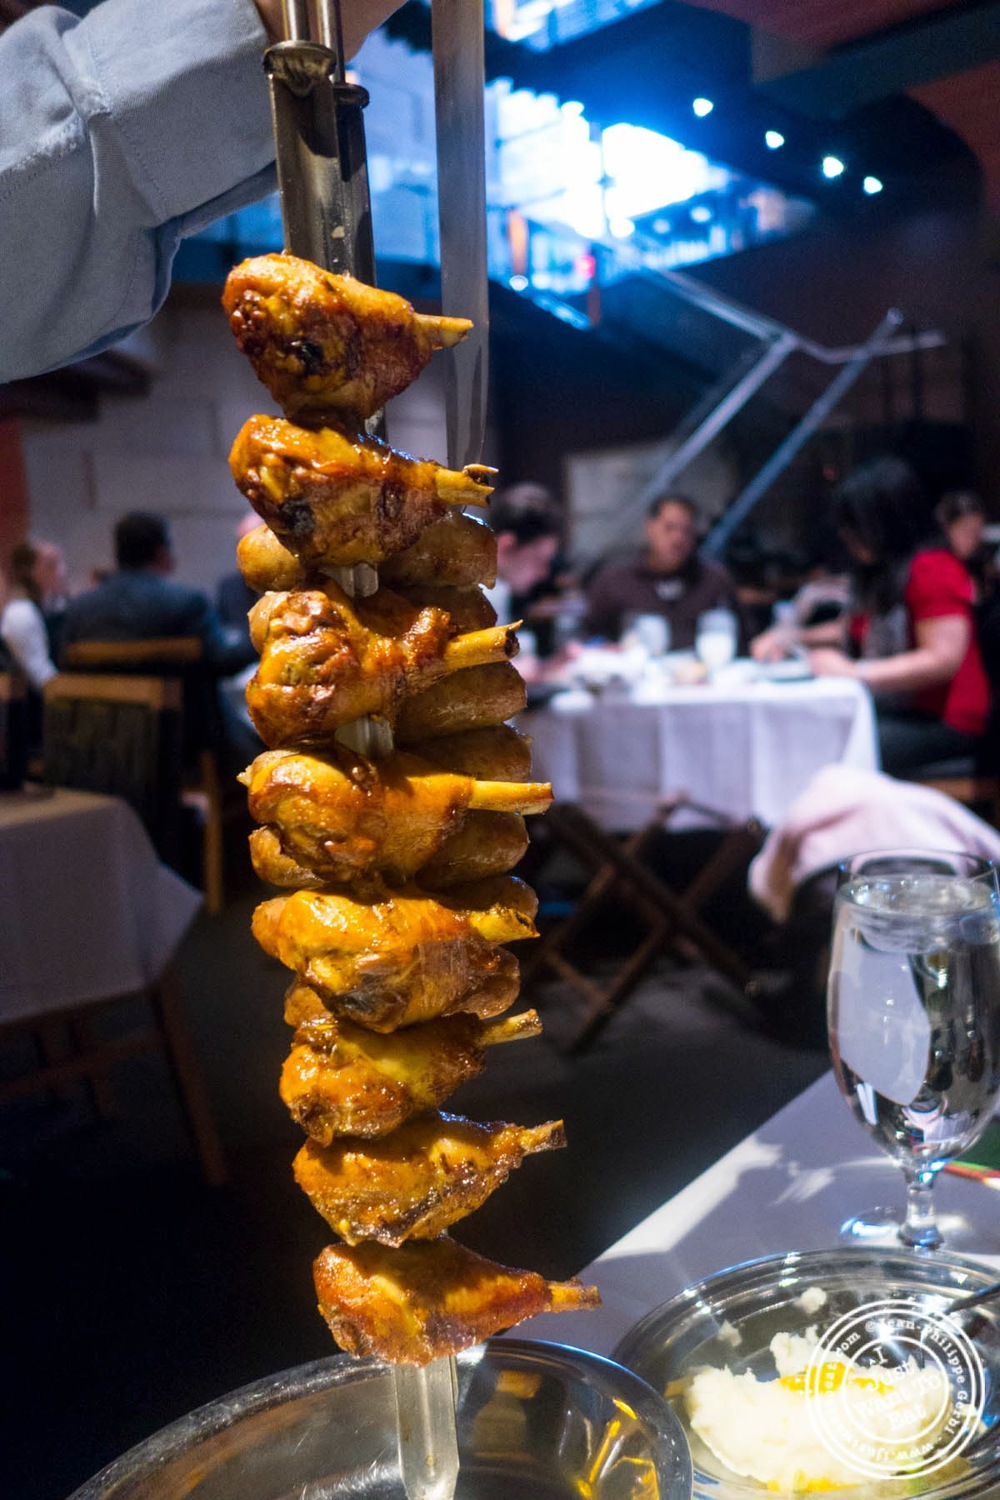 image of chicken legs at Fogo De Chao Brazilian steakhouse in NYC, New York